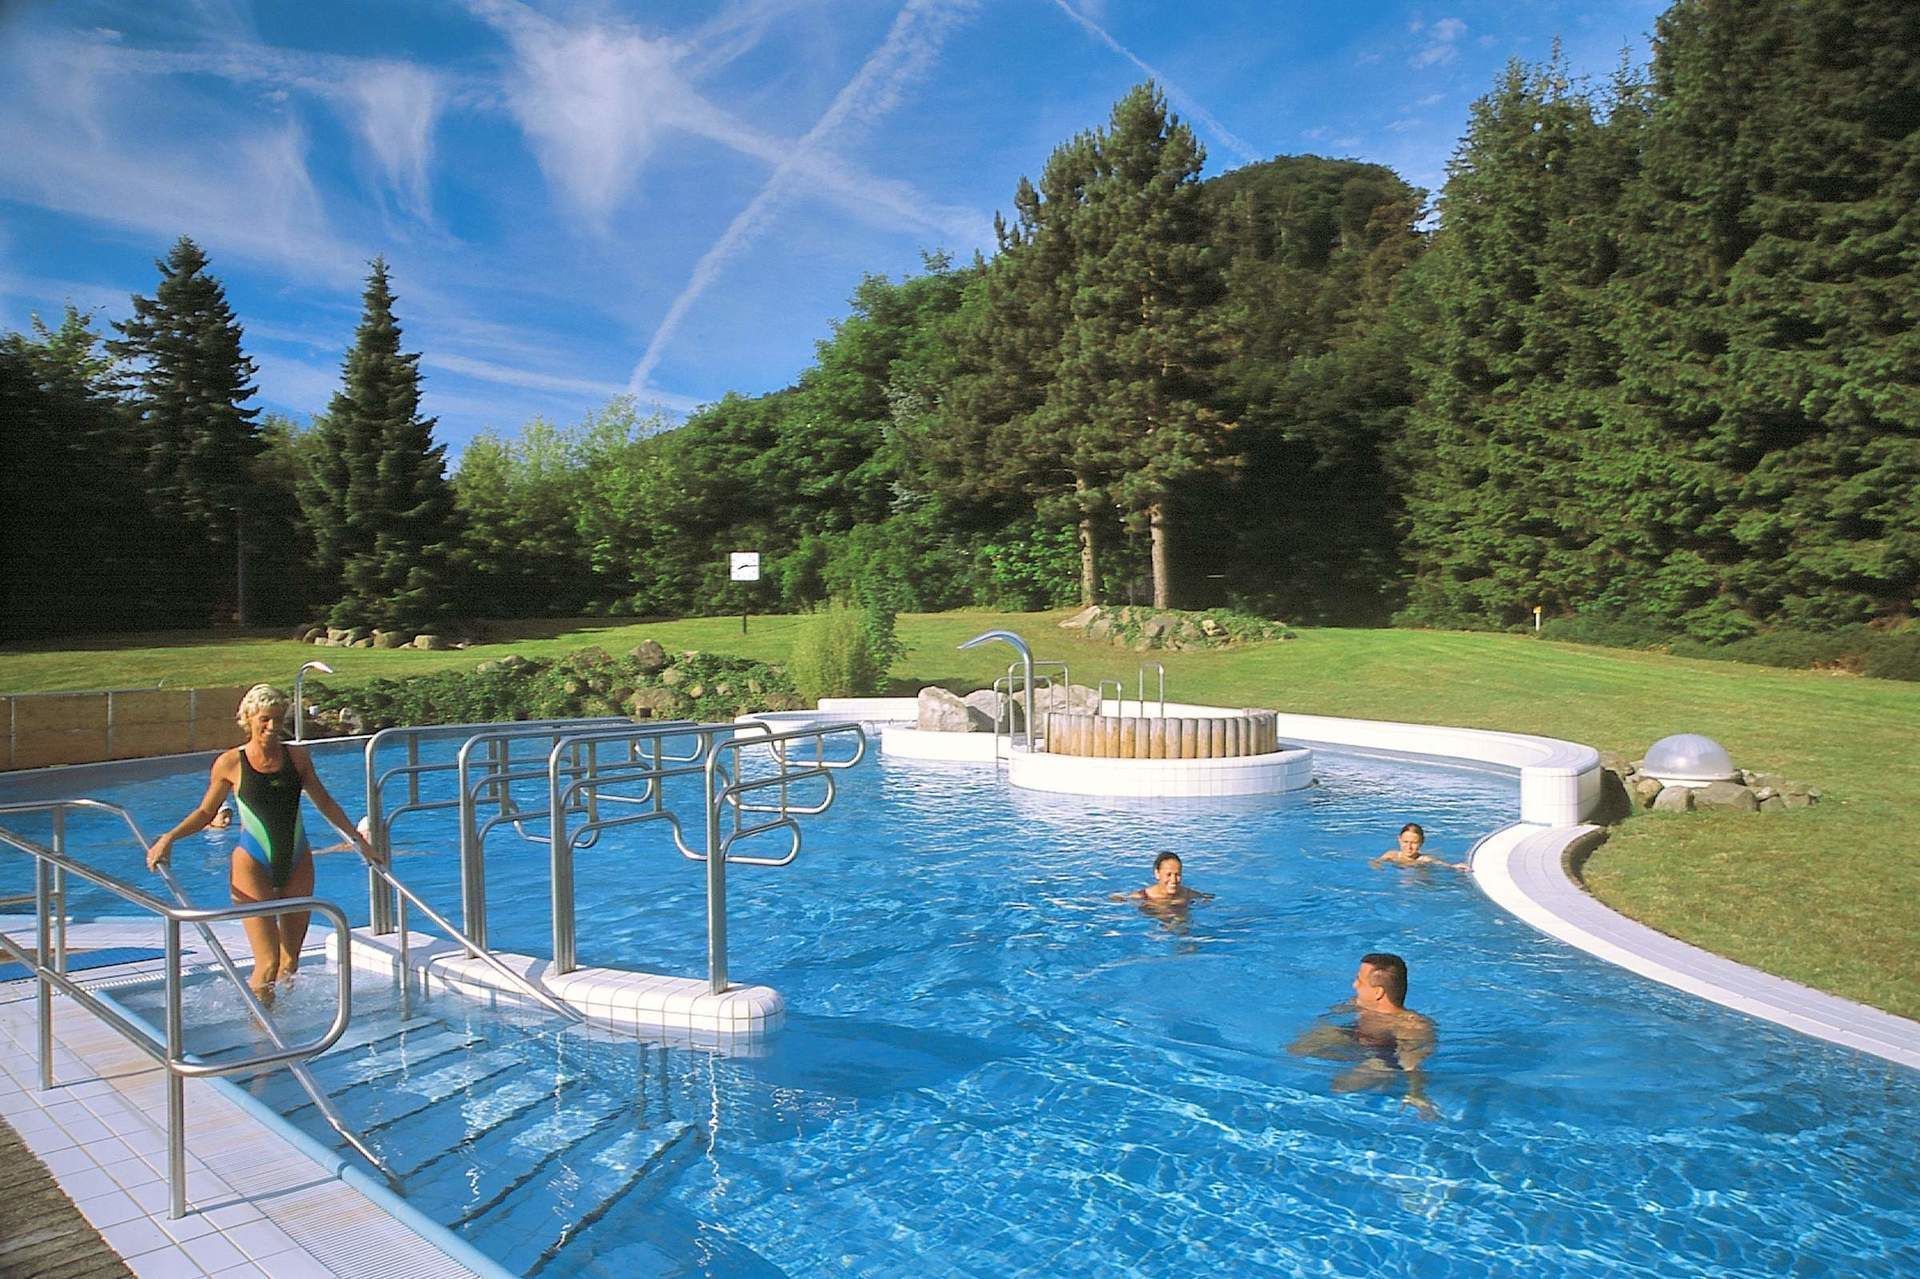 Sole therme bad harzburg therme harz thermen hotel for Hotel harz schwimmbad